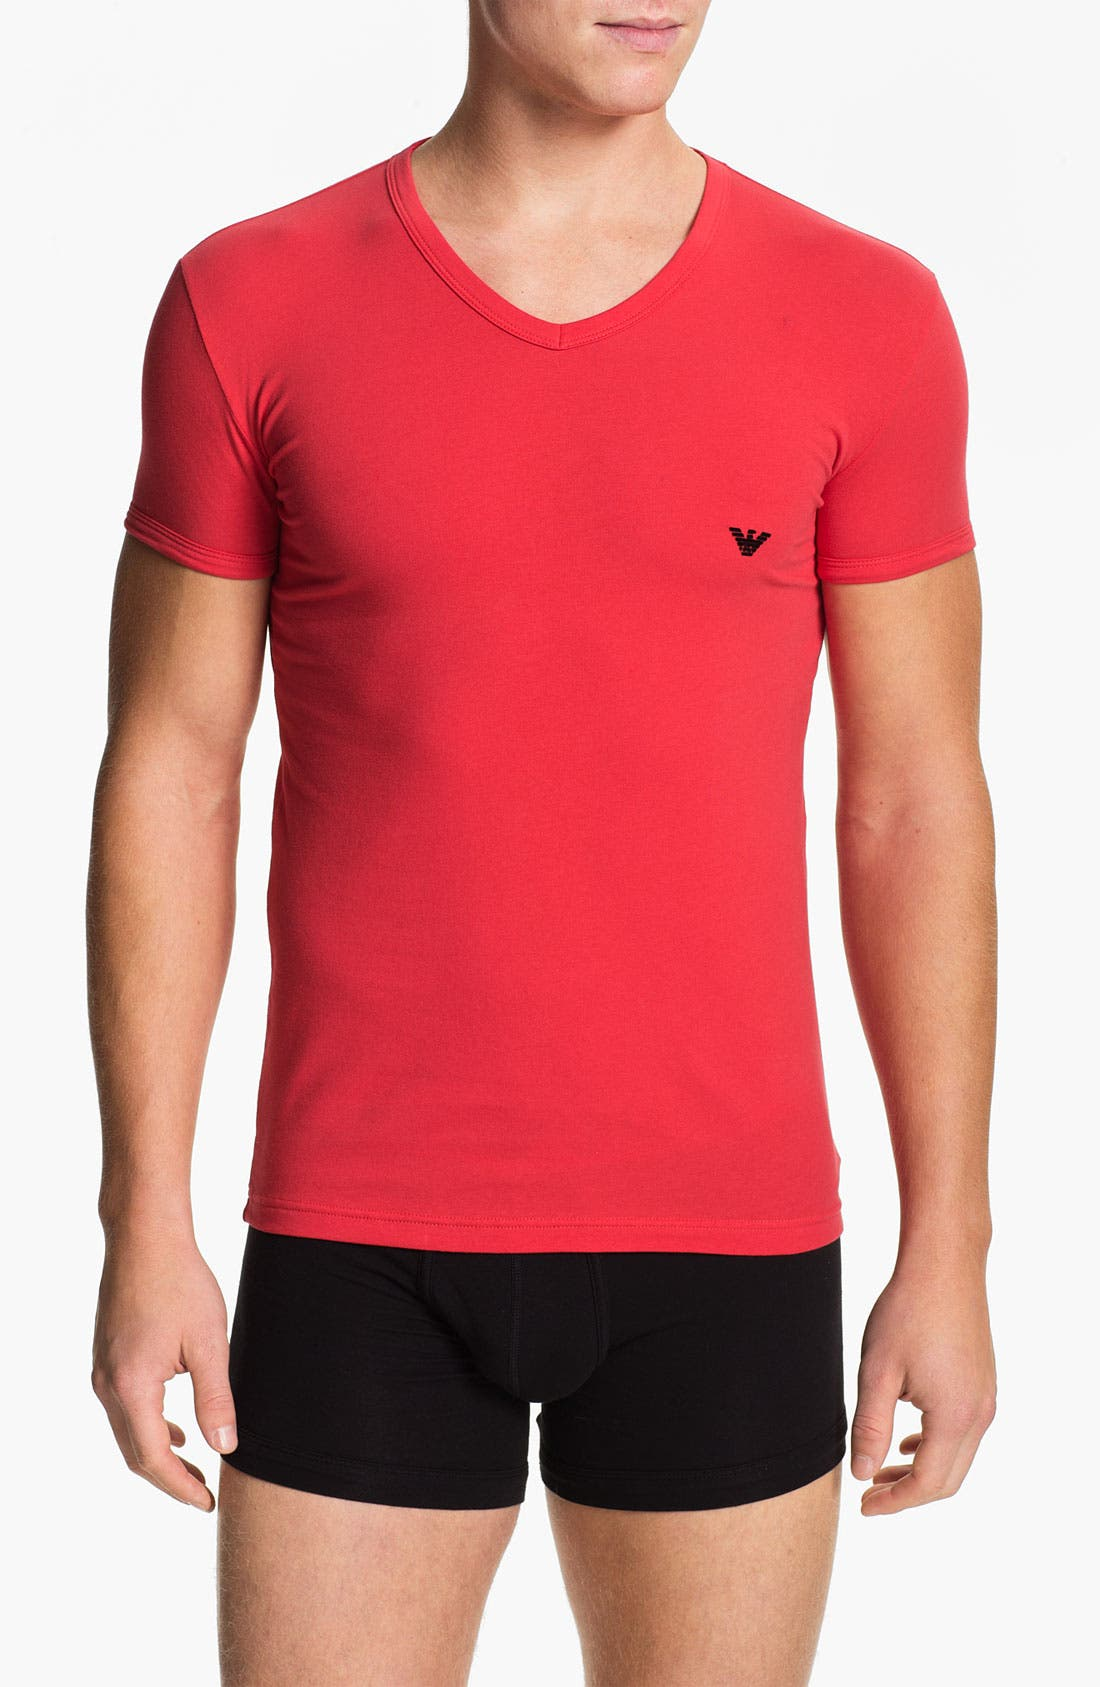 Main Image - Emporio Armani V-Neck Stretch Cotton T-Shirt